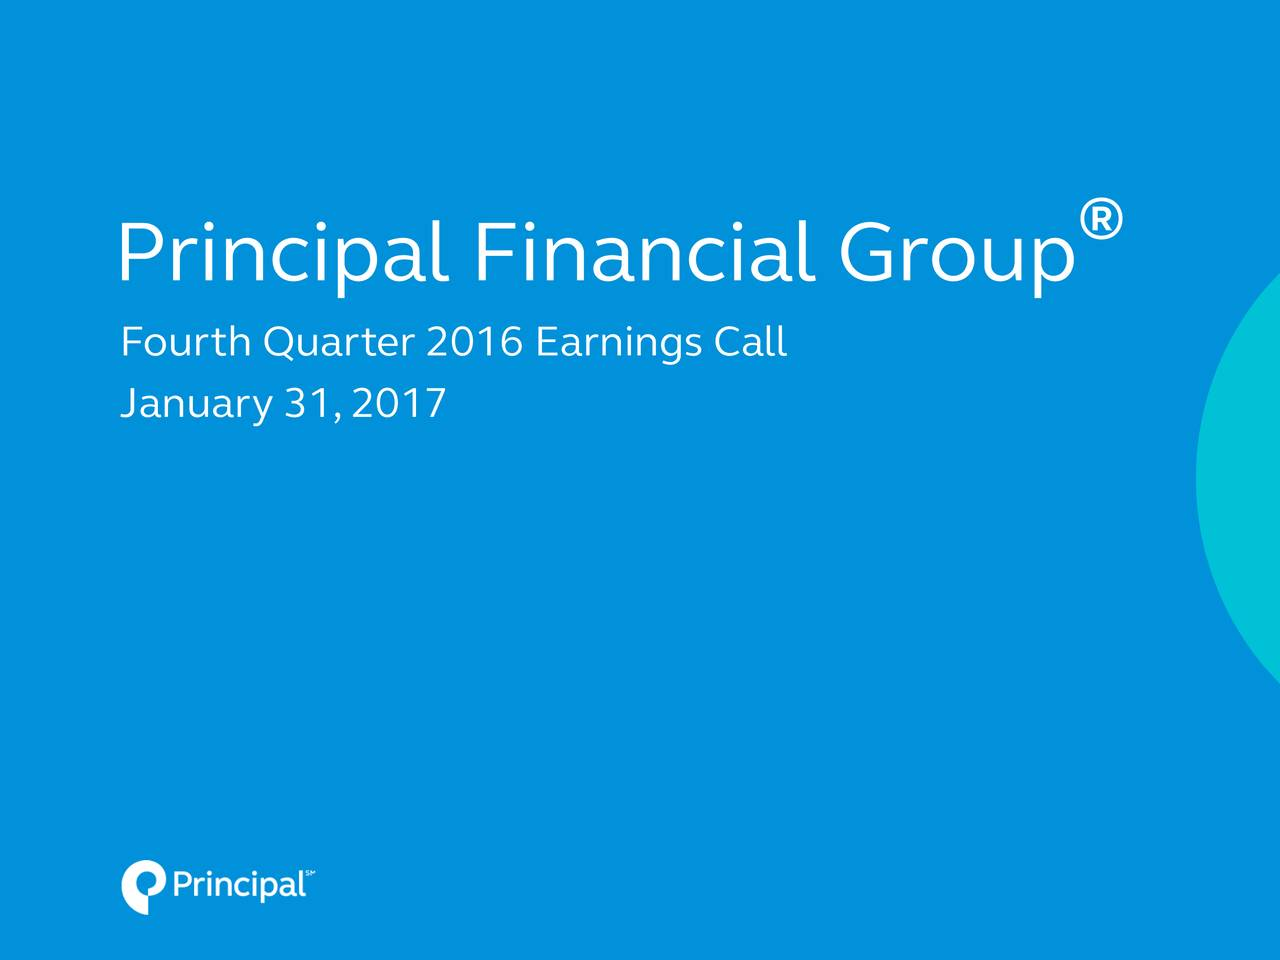 Principal Financial Group Fourth Quarter 2016 Earnings Call January 31,2017